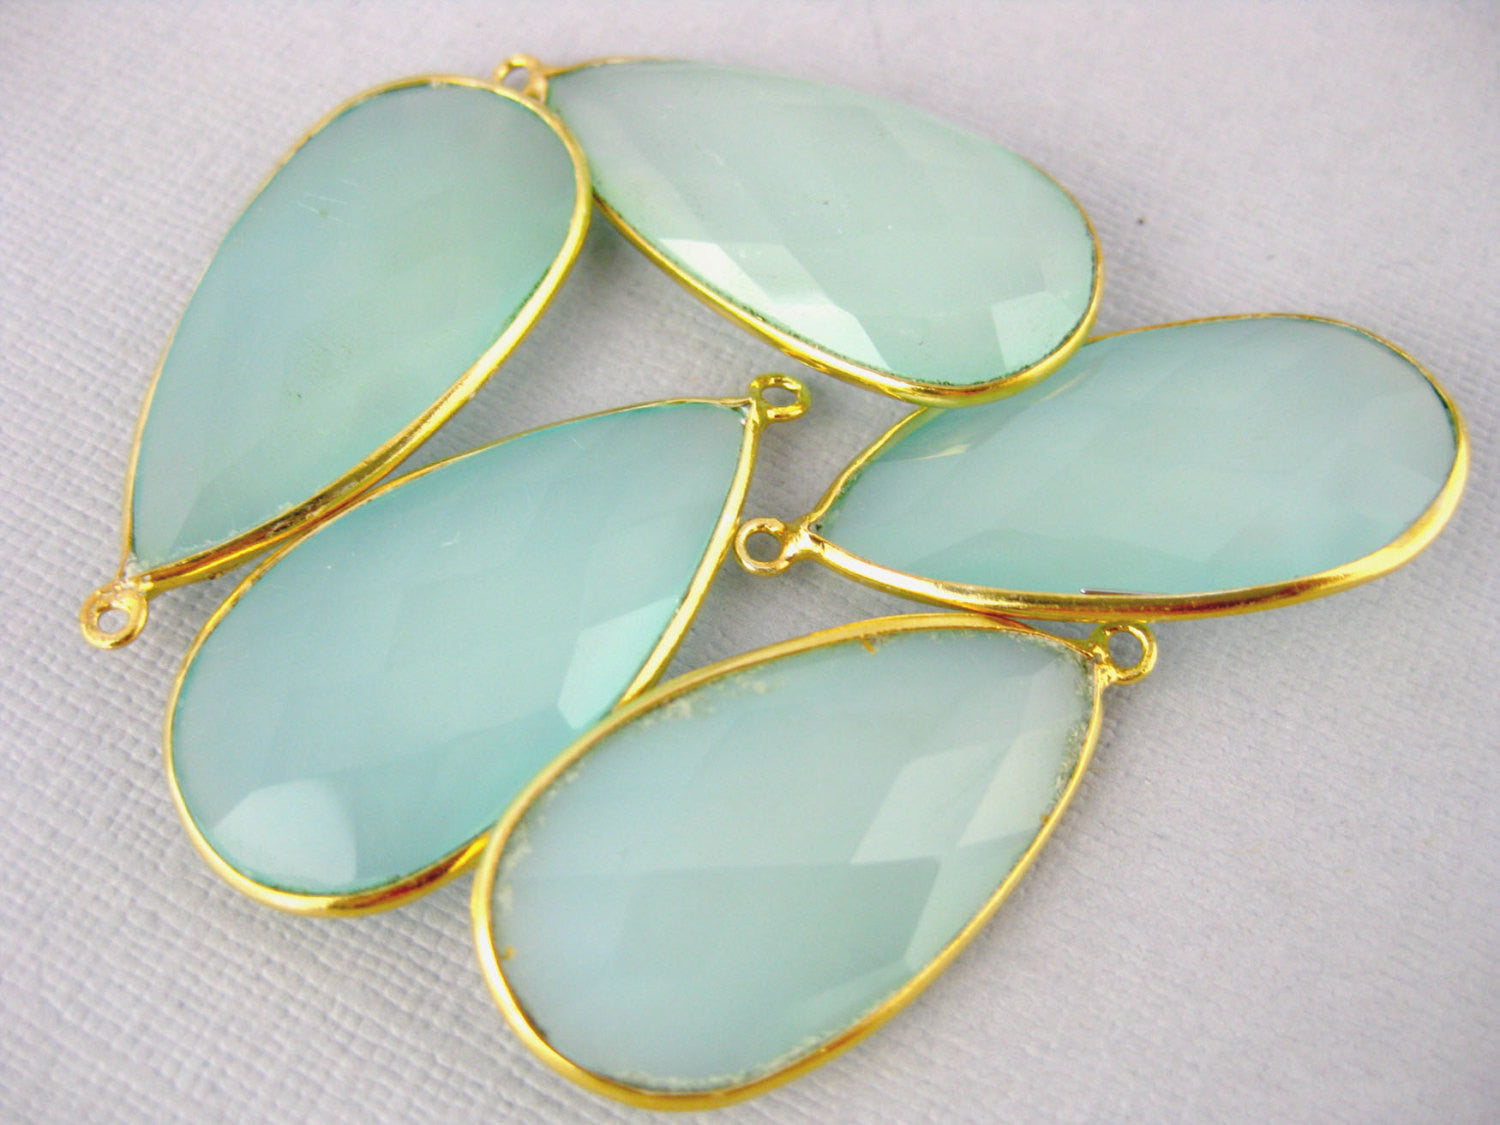 Aqua Blue Chalcedony Teardrop Pendant- 30mm x 15mm Gold Over Sterling Bezel - Single Bail Charm Pendant